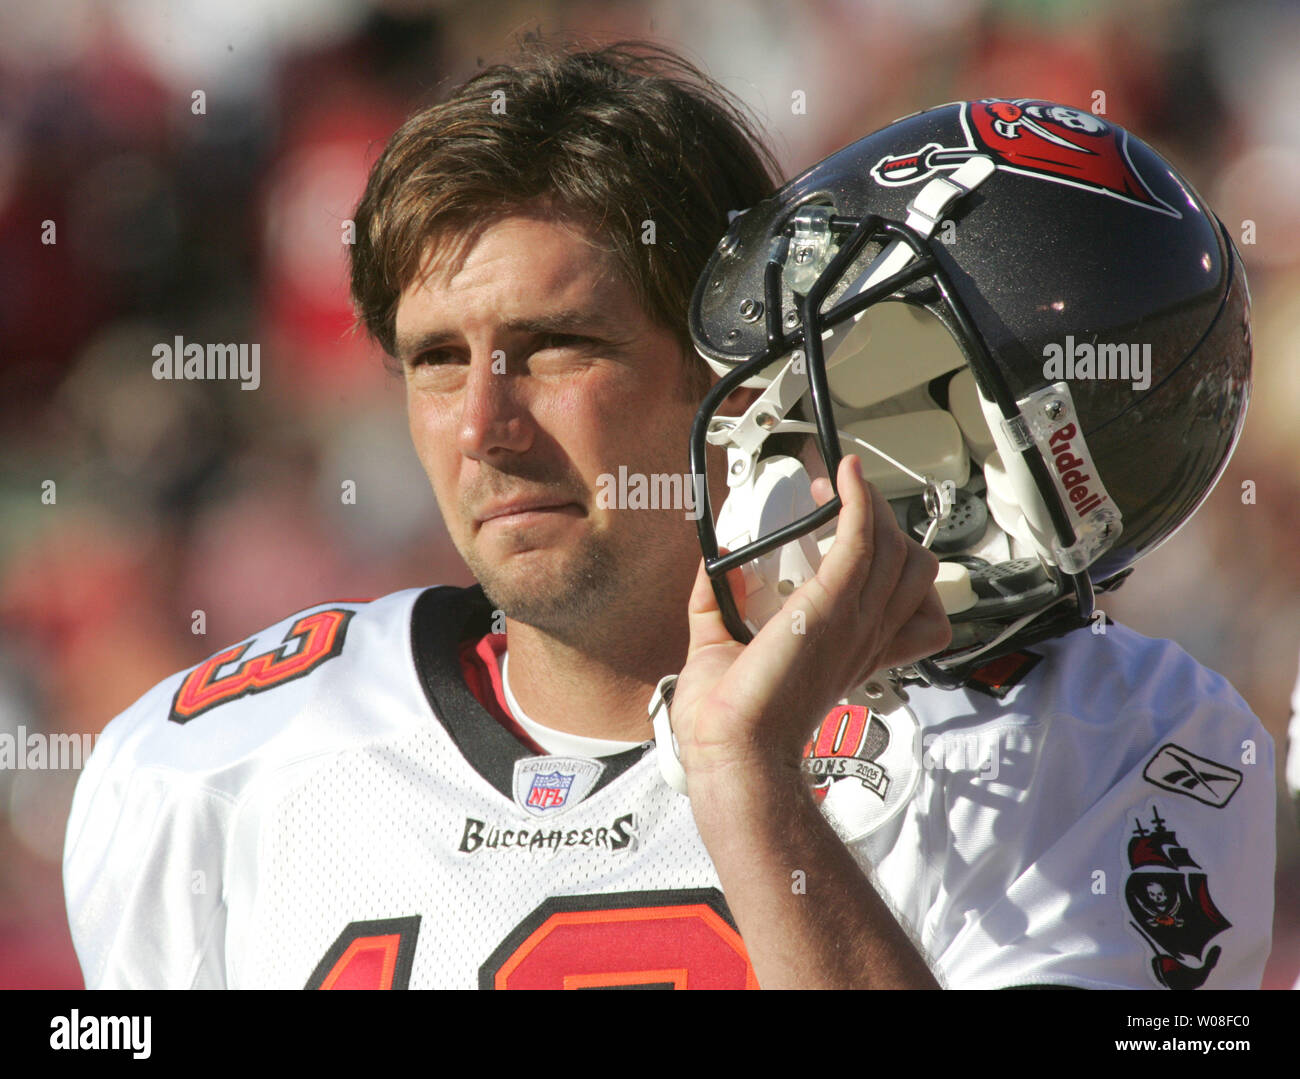 Tampa Bay Bucs' newest QB and former 49er Tim Rattay watches play at Monster Park in San Francisco on October 30, 2005. The 49ers upset the Bucs 15-10.    (UPI Photo/Terry Schmitt) - Stock Image